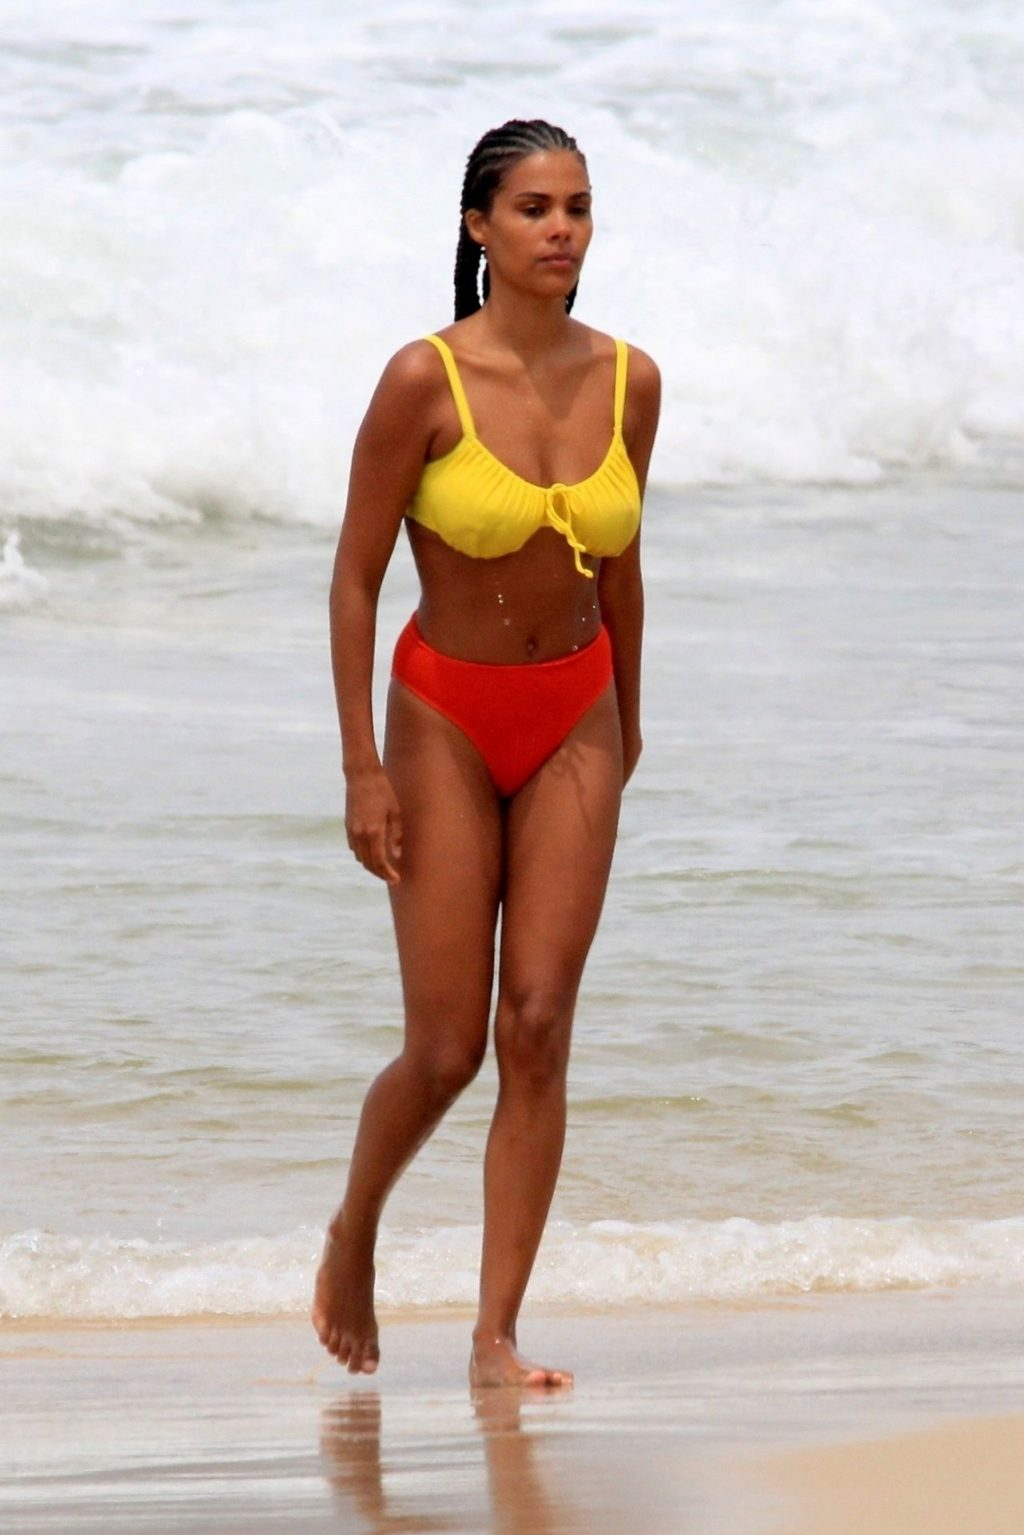 Beach Babe Tina Kunakey and Vincent Cassel Heat Up Their Romance on the Beaches of Rio (66 Photos)